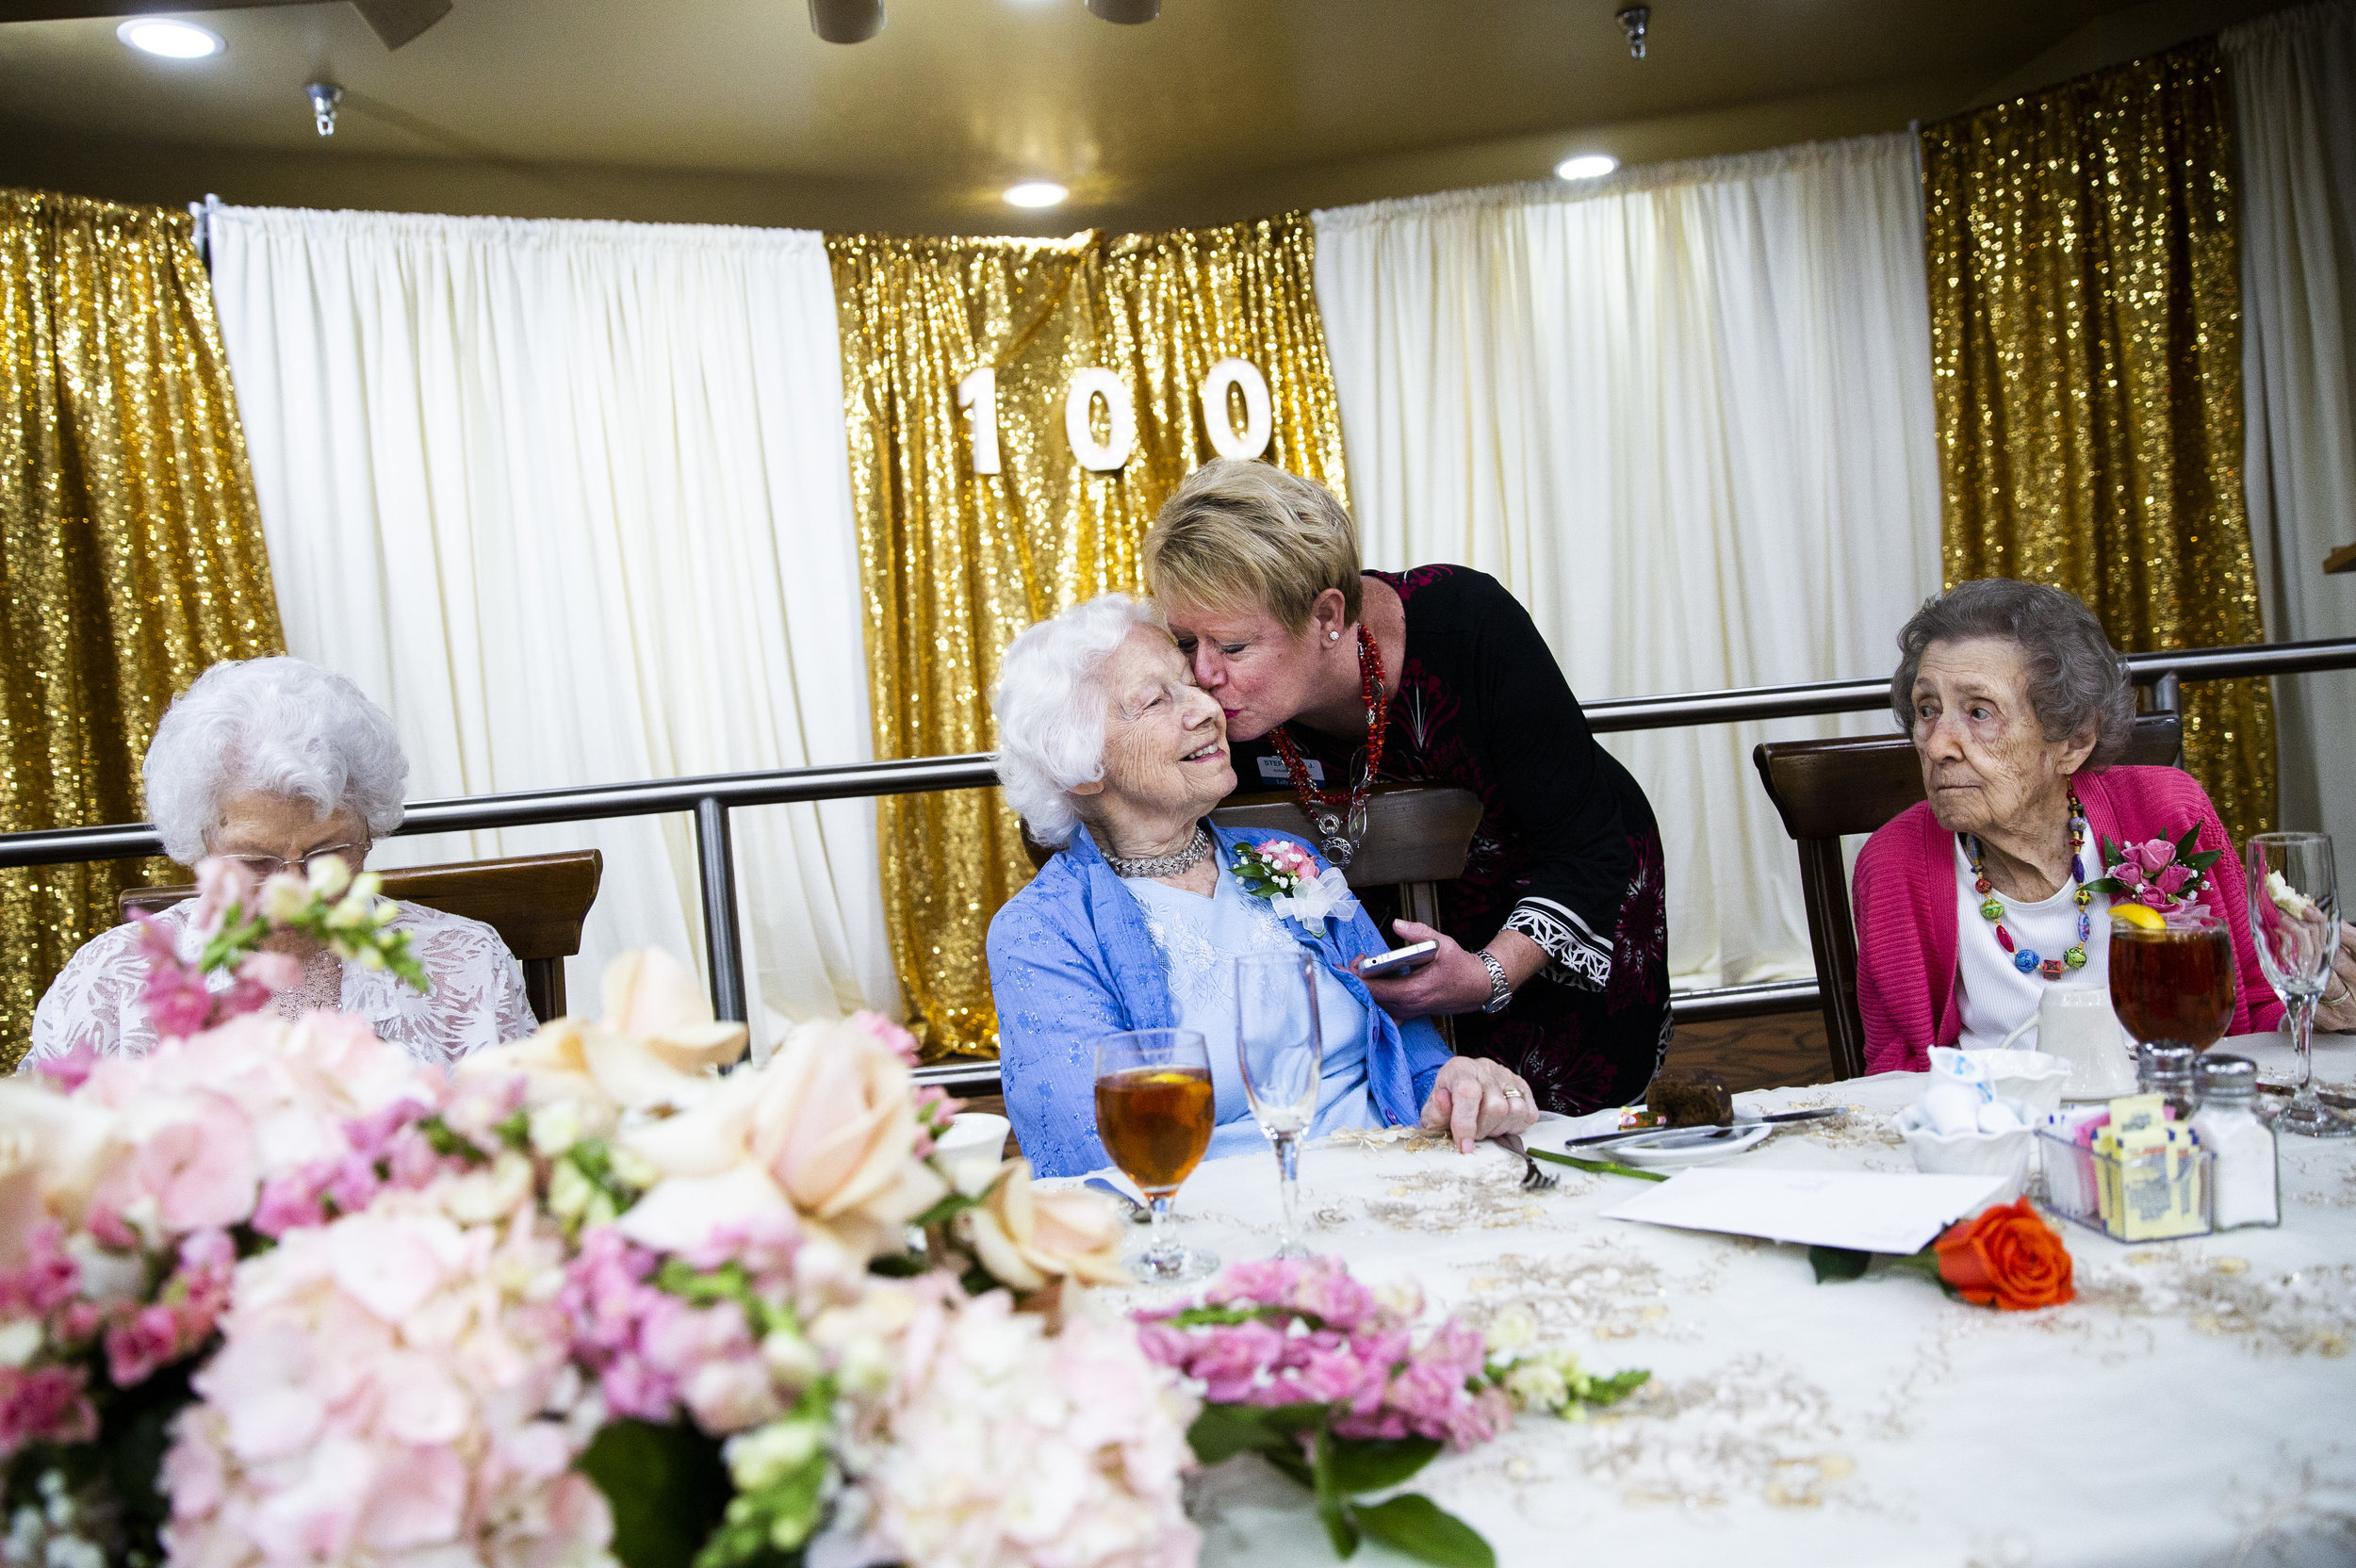 Stephanie Janke, an activities assistant, kisses Vesta Warner, 100, on the cheek to wish her a happy birthday during a celebration for the six resident centenarians at the Lely Palms Retirement Community in Naples on Wednesday, July 18, 2018.